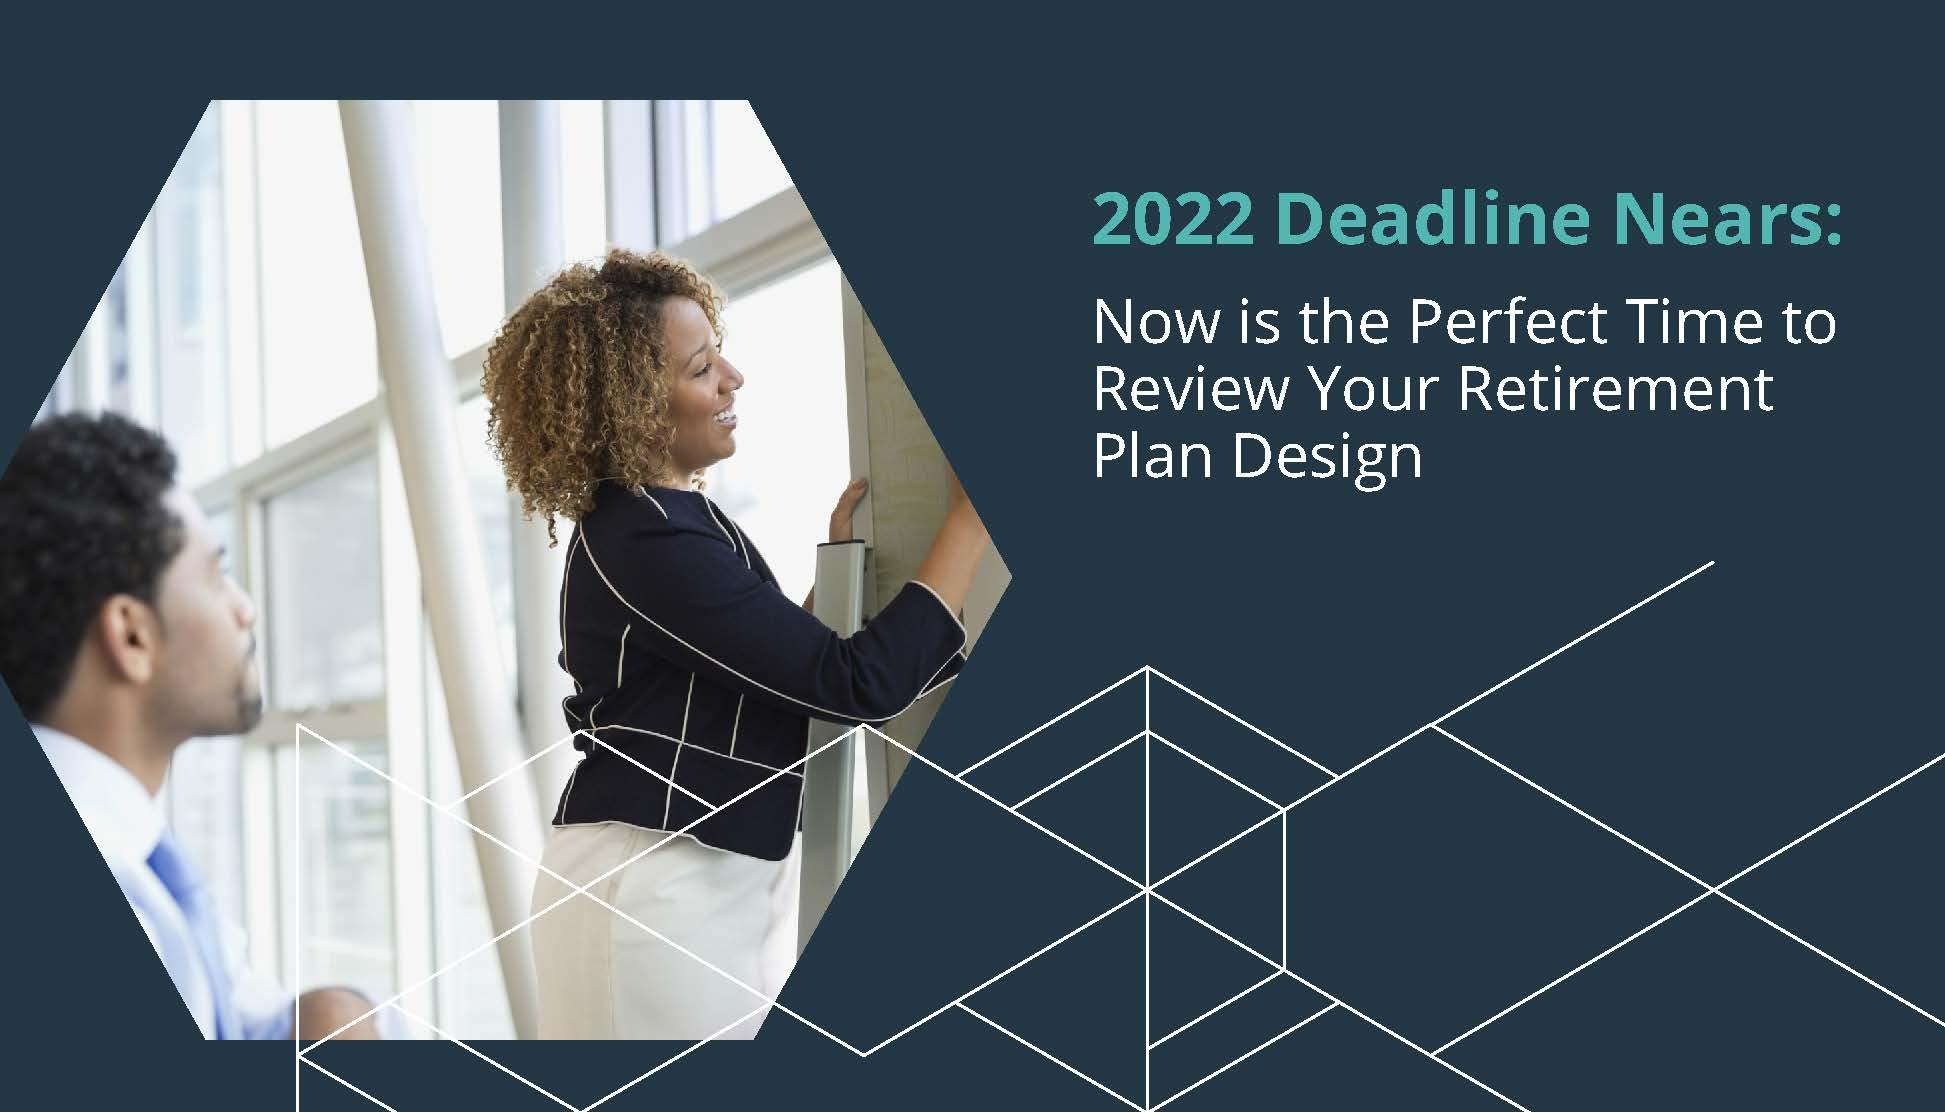 2022 Deadline Nears: Now is the Perfect Time to Review Your Retirement Plan Design  Thumbnail